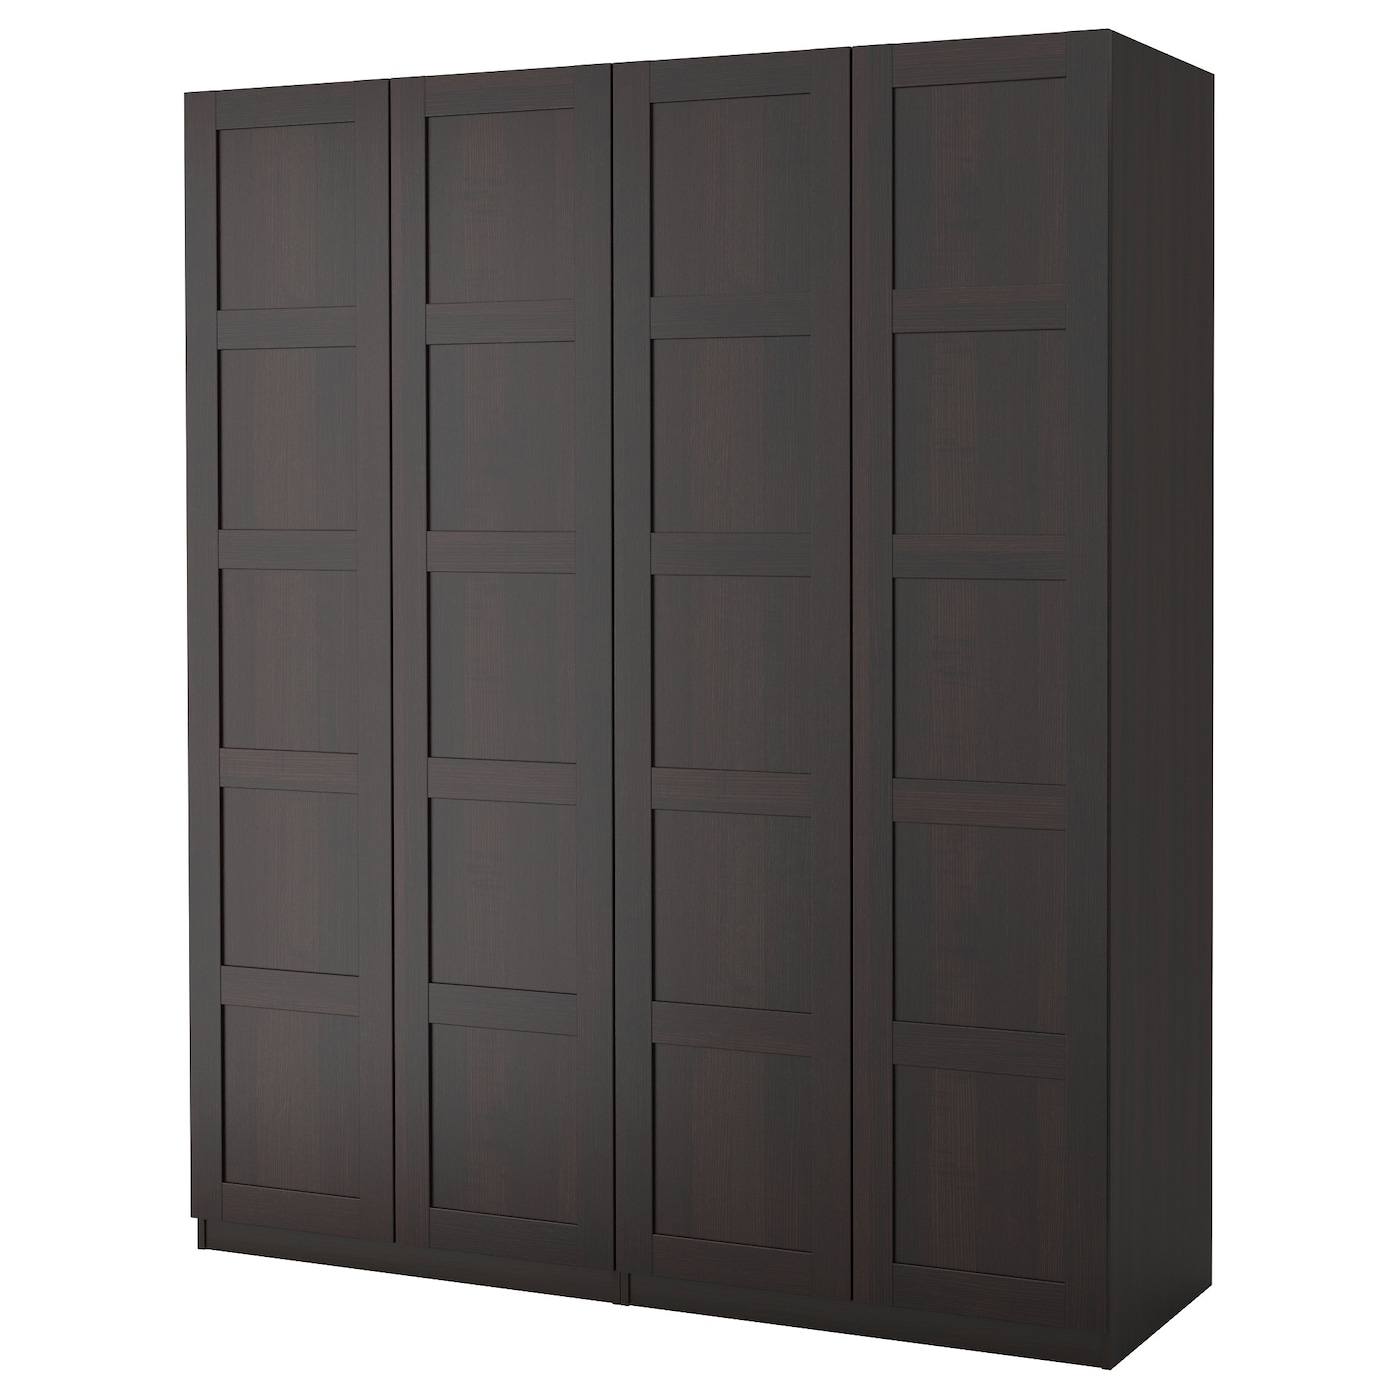 Pax wardrobe black brown bergsbo black brown 200x60x236 cm ikea - Armoire ikea pax occasion ...